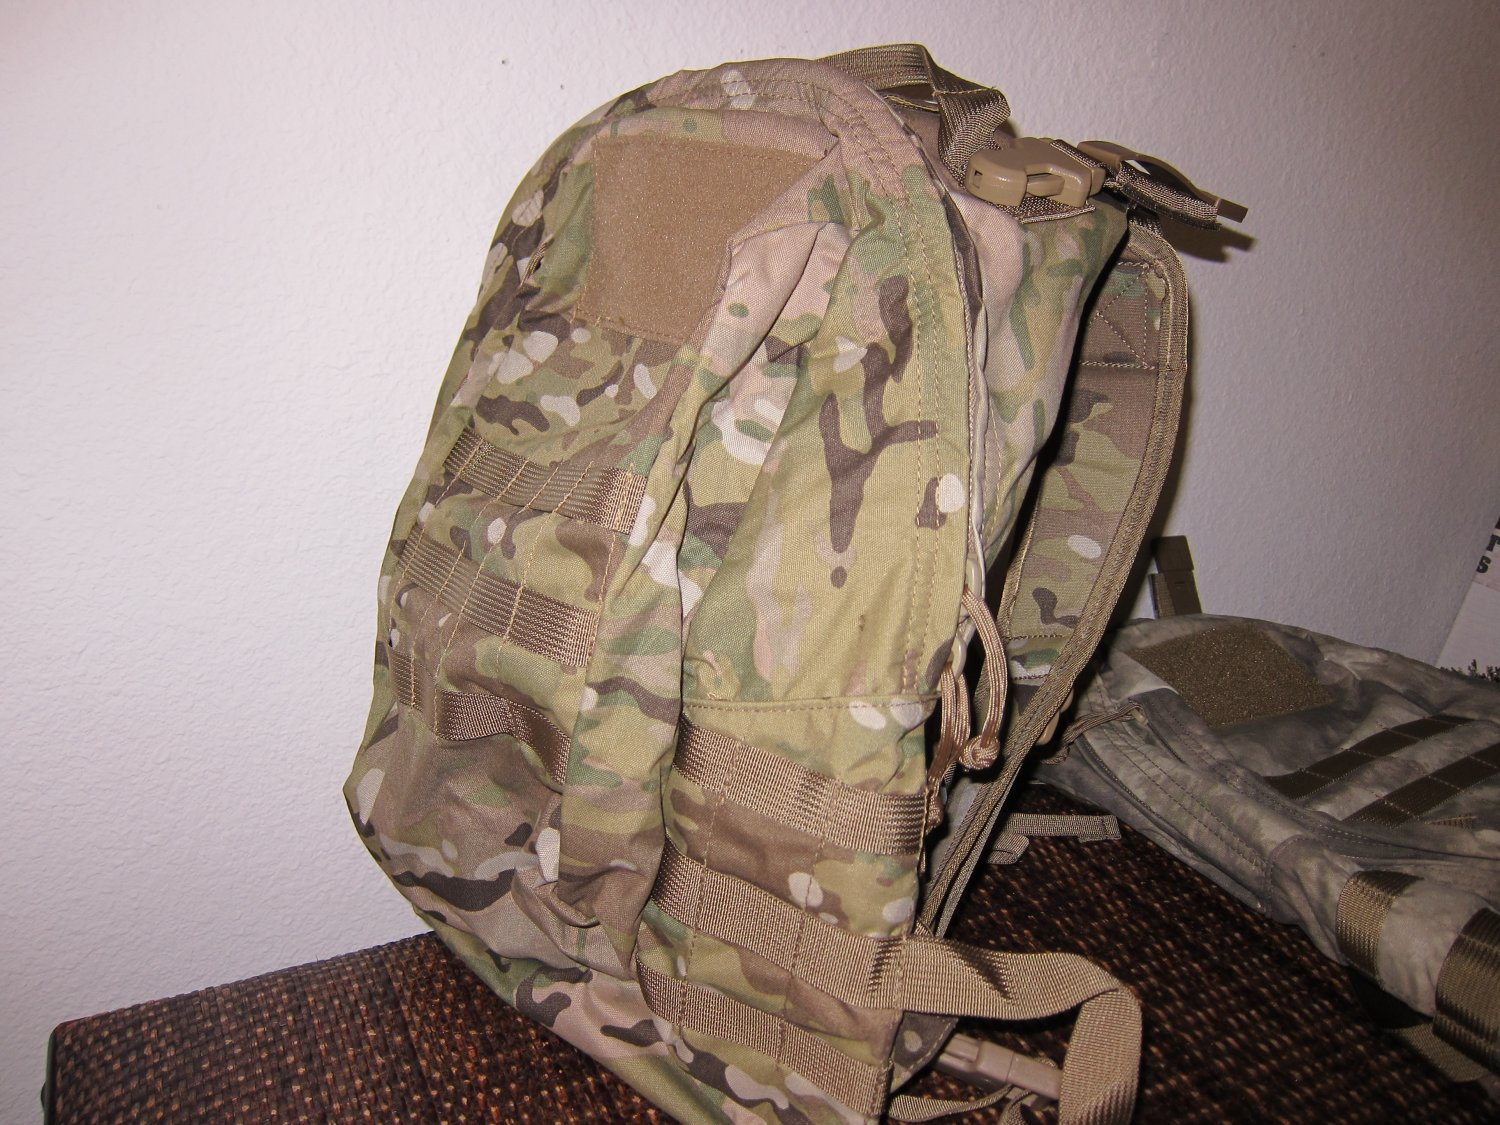 <!--:en-->Grey Ghost Lightweight Assault Pack/Fight Lite Operator Removable Pack (LAP/FLORP): MOLLE-Attachable Lightweight Tactical Pack (Backpack) for Special Operations Forces (SOF) <!--:-->